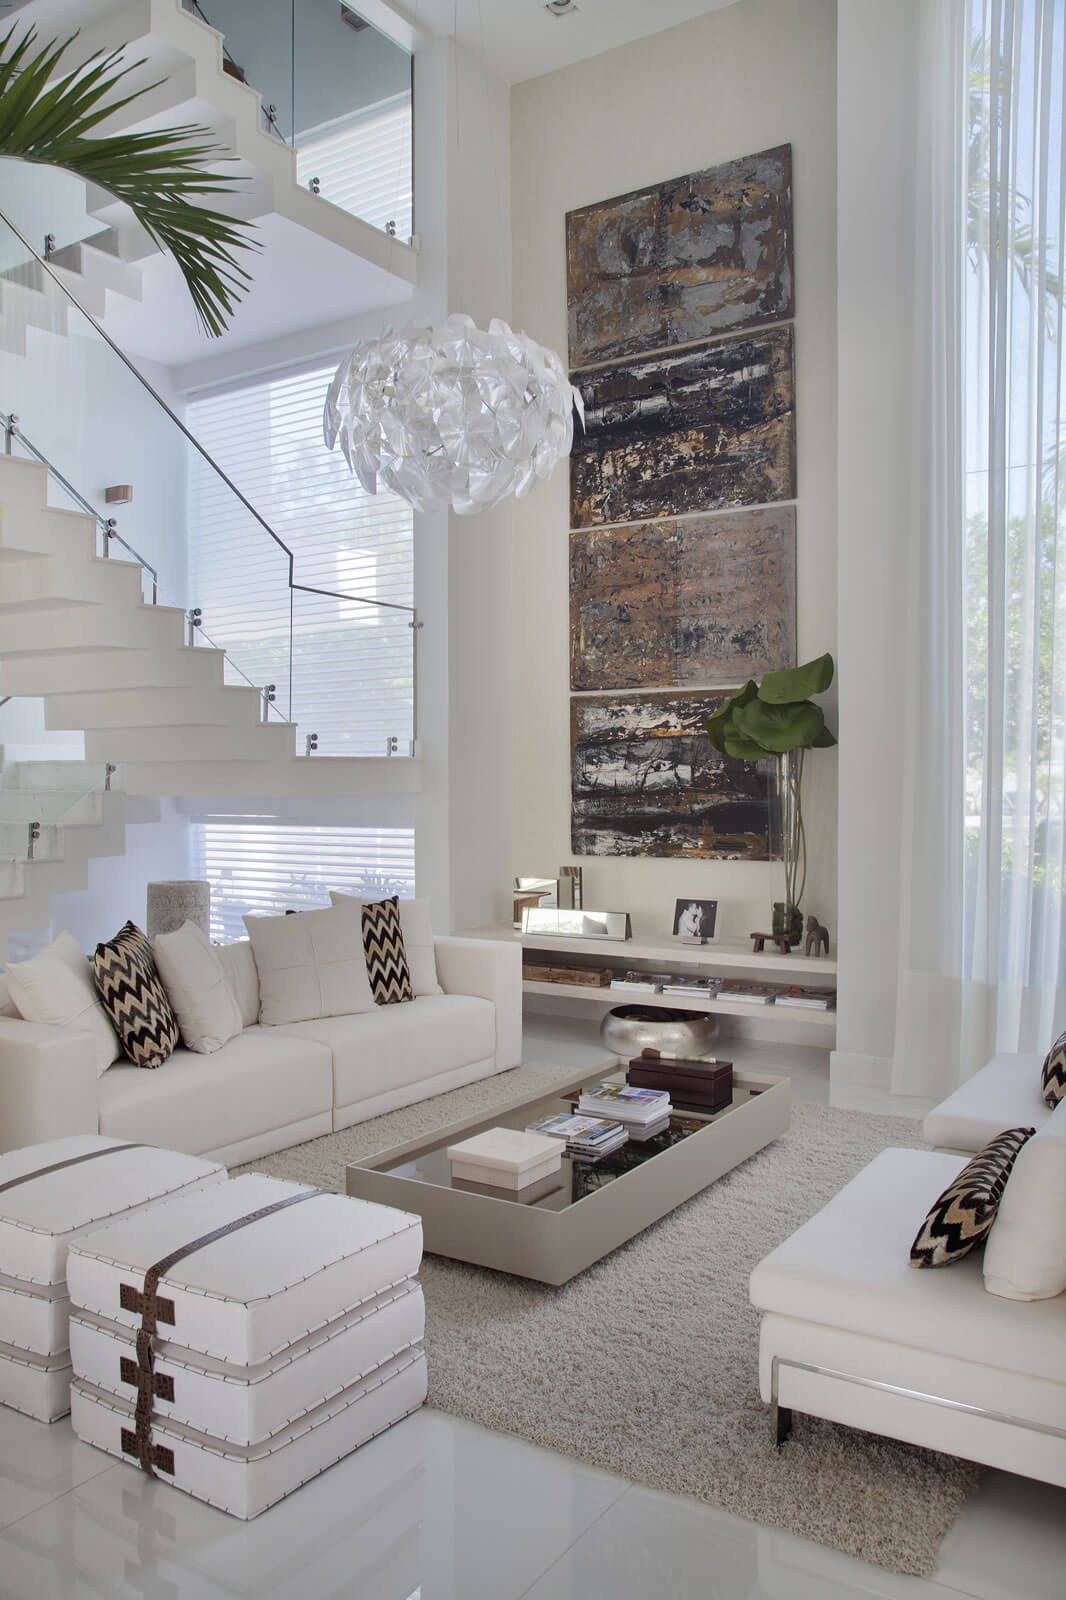 Modern Chic Living Room Decorating Ideas Beautiful 26 Best Modern Living Room Decorating Ideas and Designs for 2019